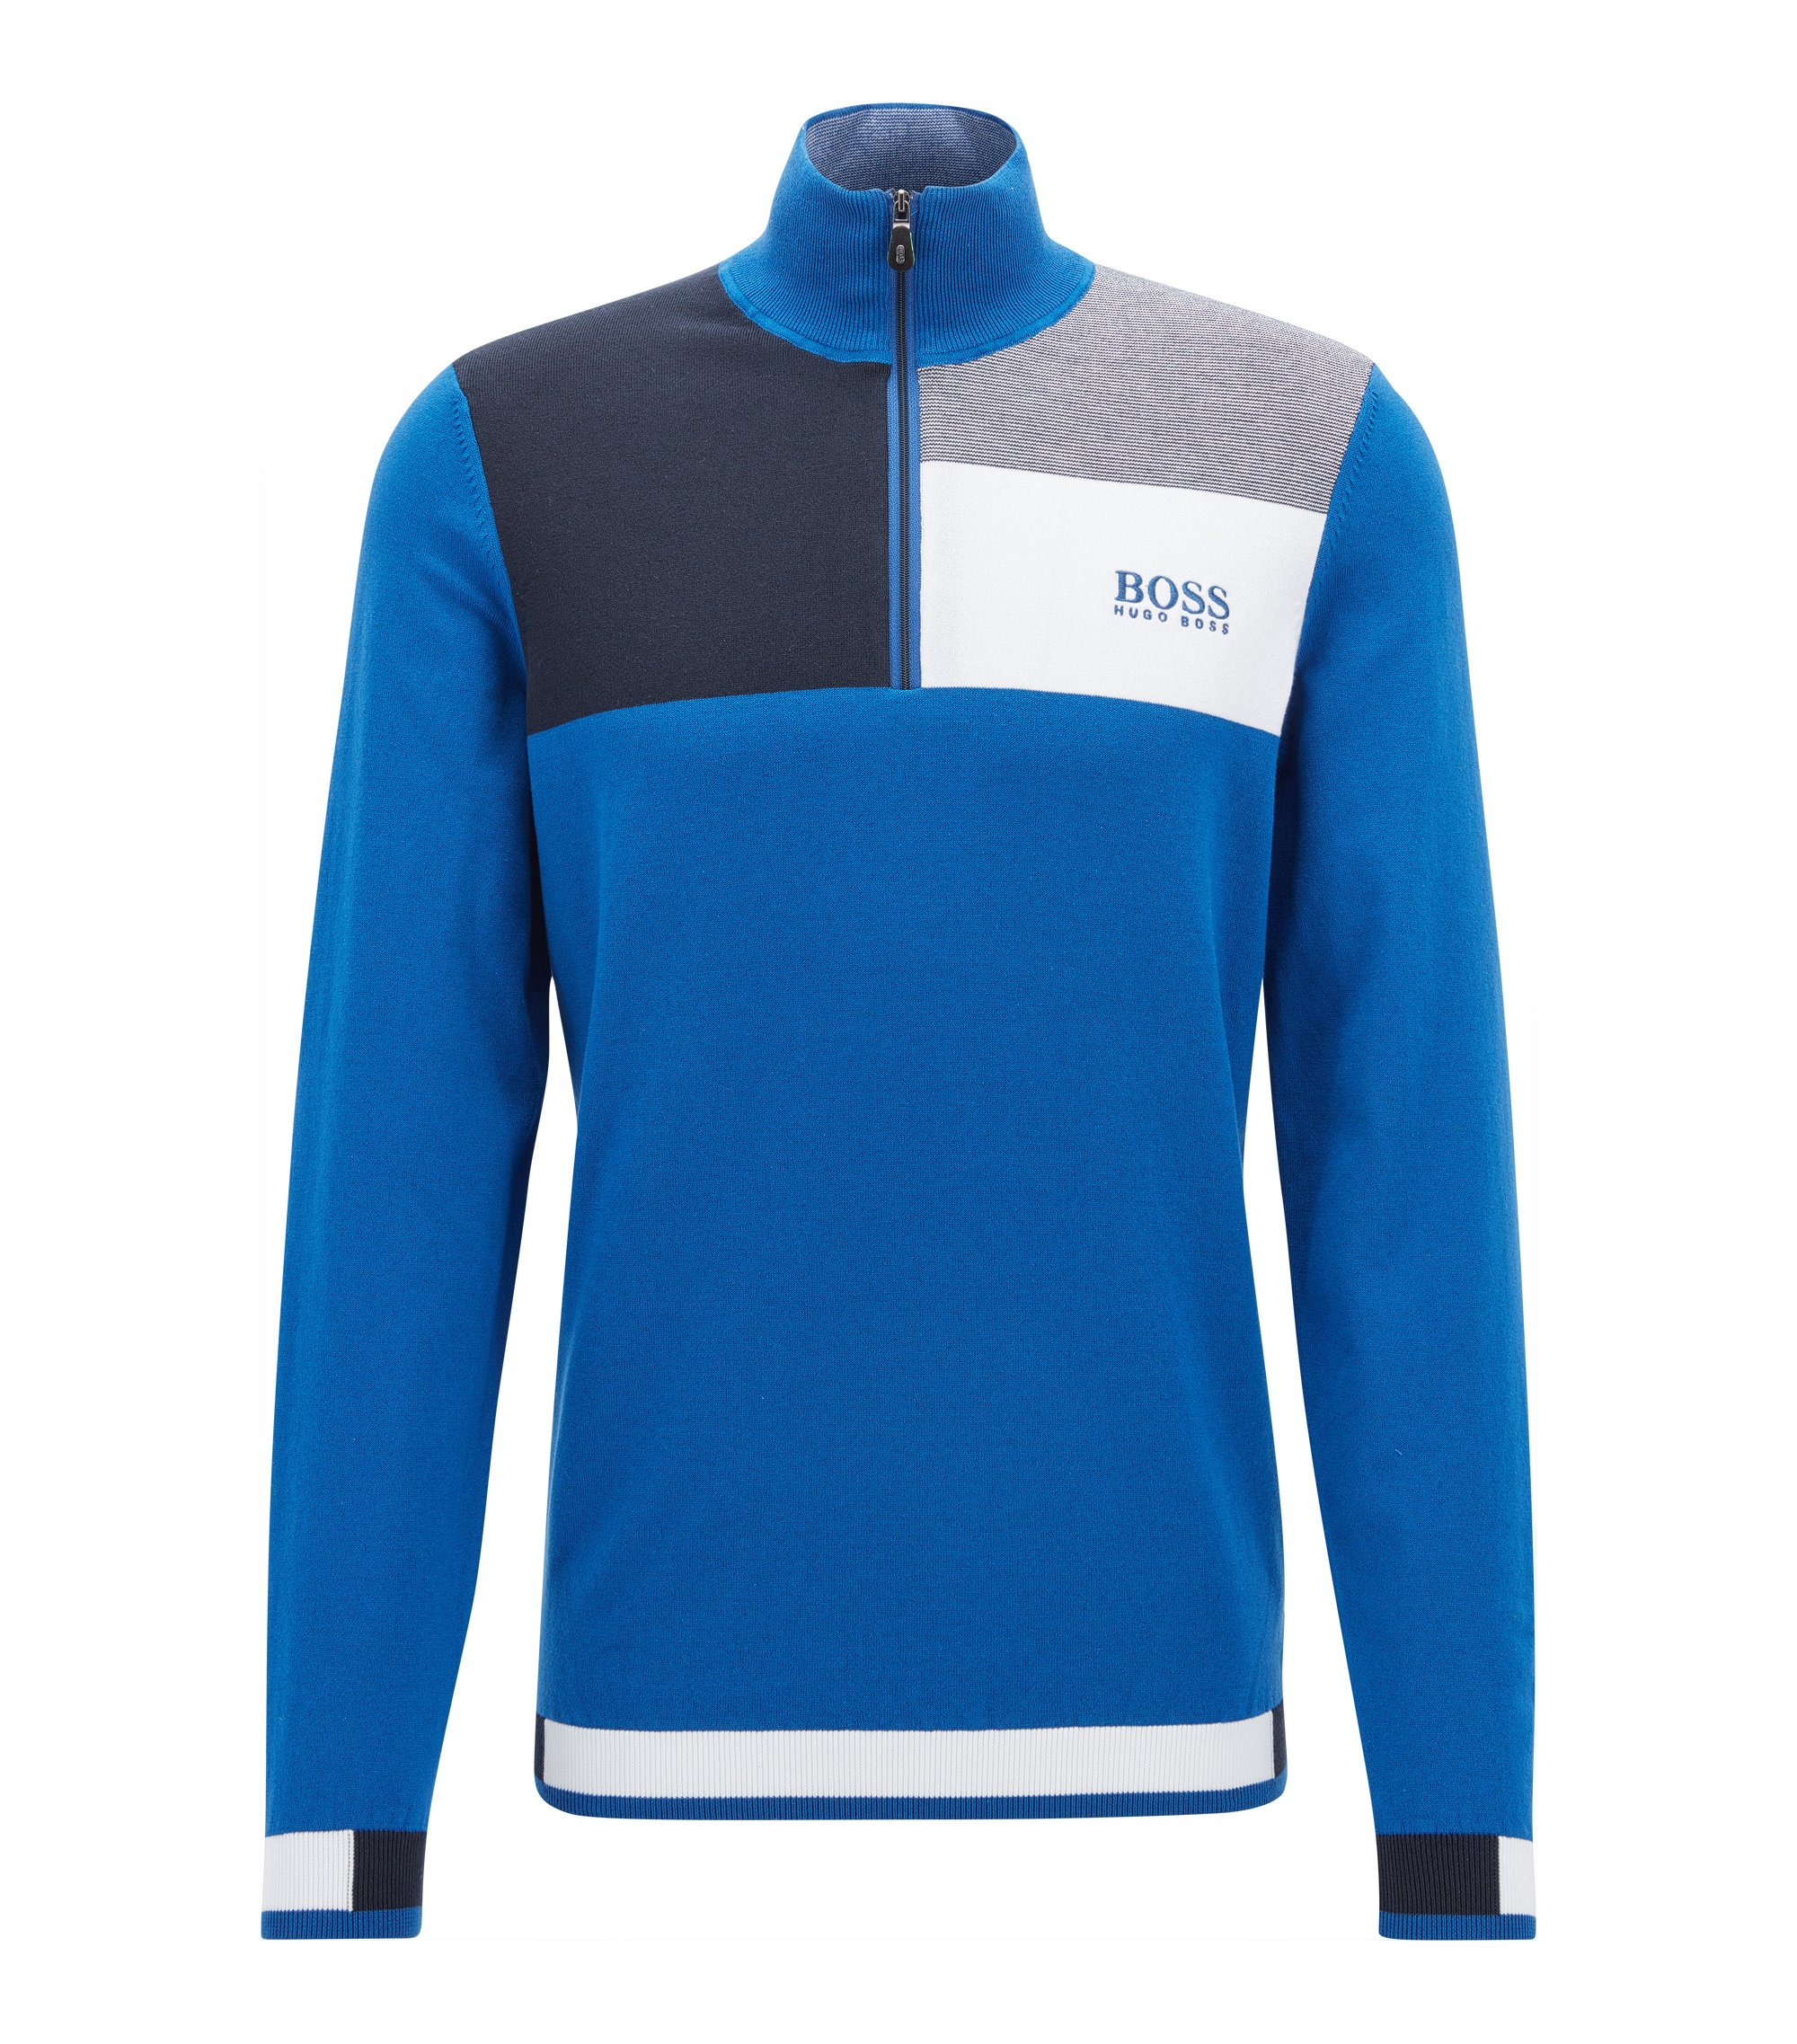 Pullover aus Baumwoll-Mix mit Troyer-Kragen aus der Professional Golf Collection, Blau